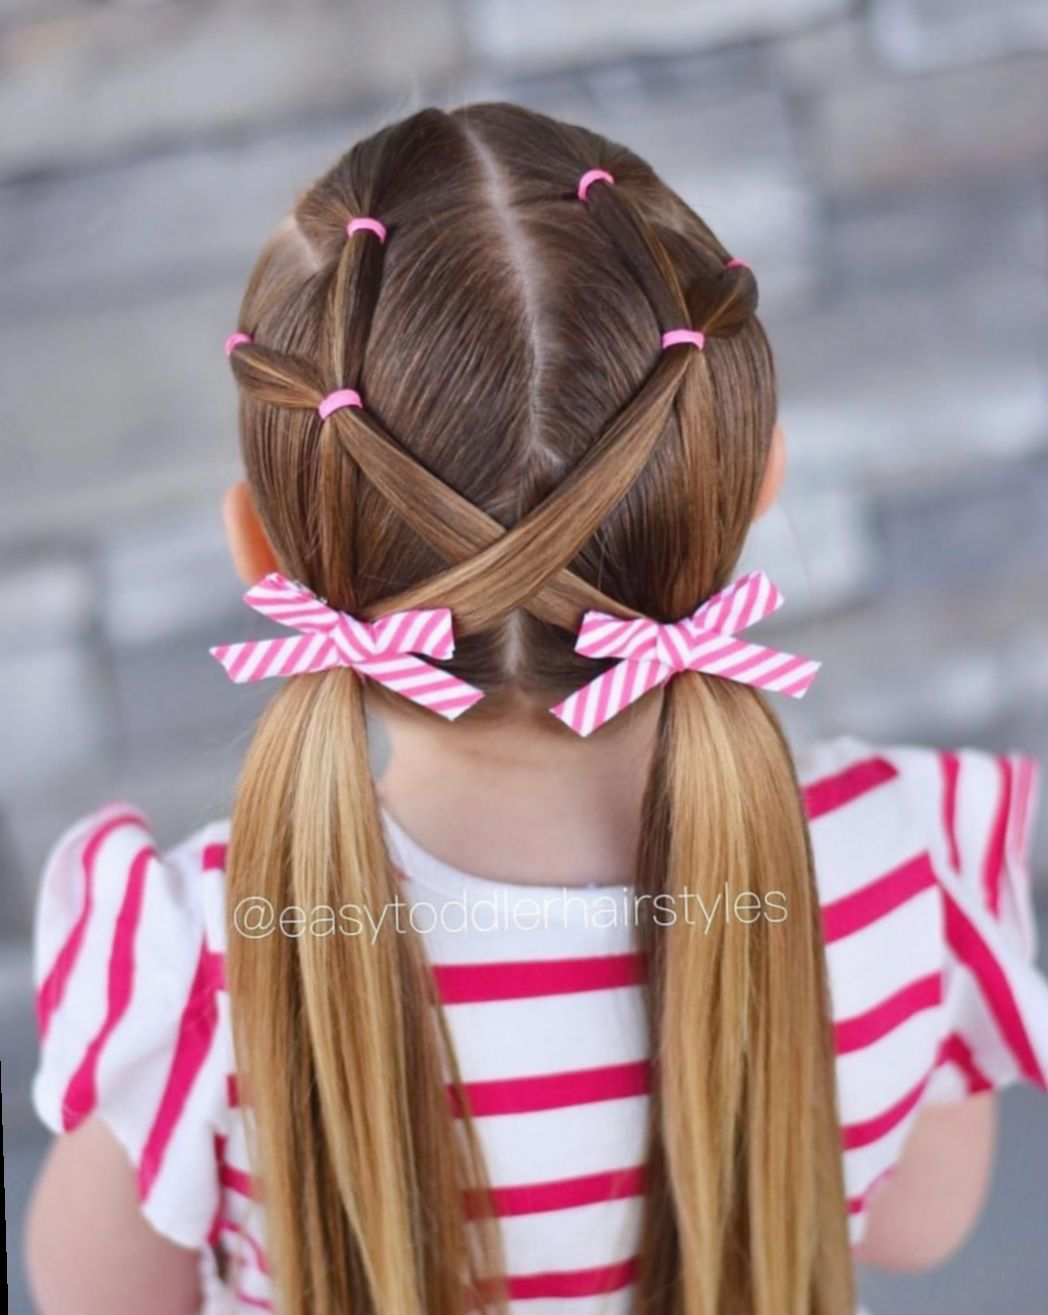 Hairstyles for kids videos rubber bands rosegoldhair